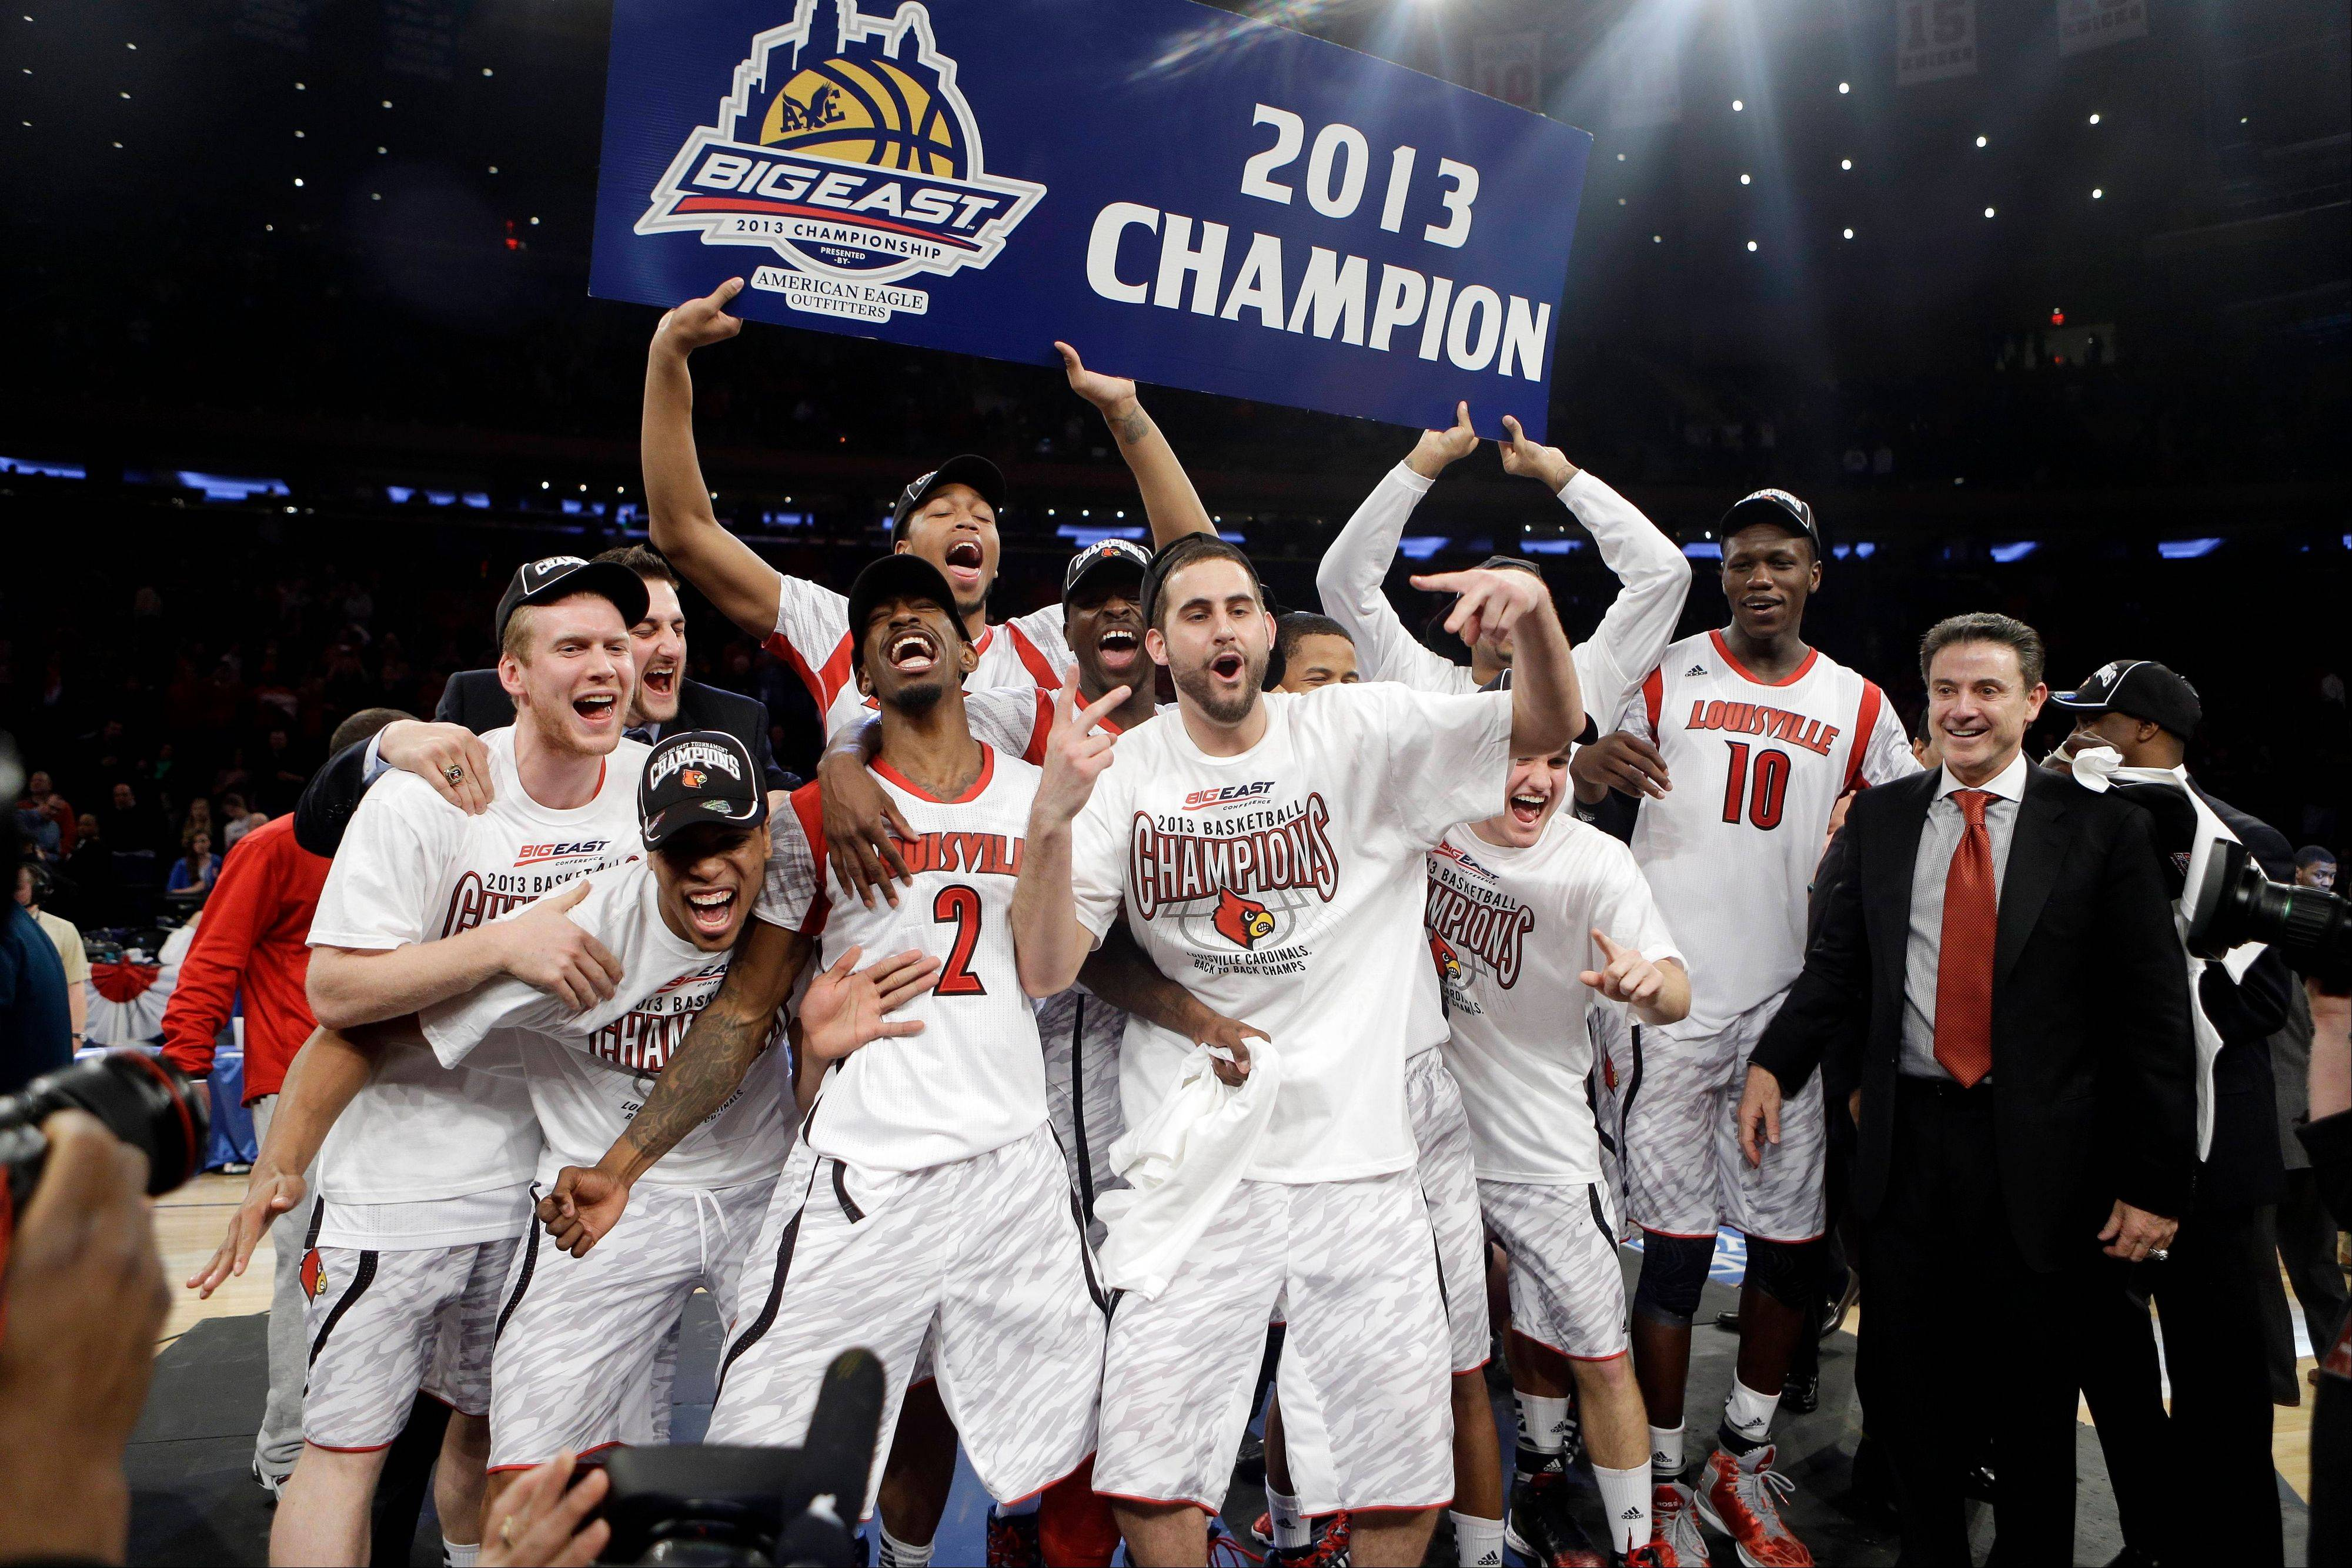 Louisville, which won the Big East earlier in the month, is the top seed in the NCAA men's tournament.